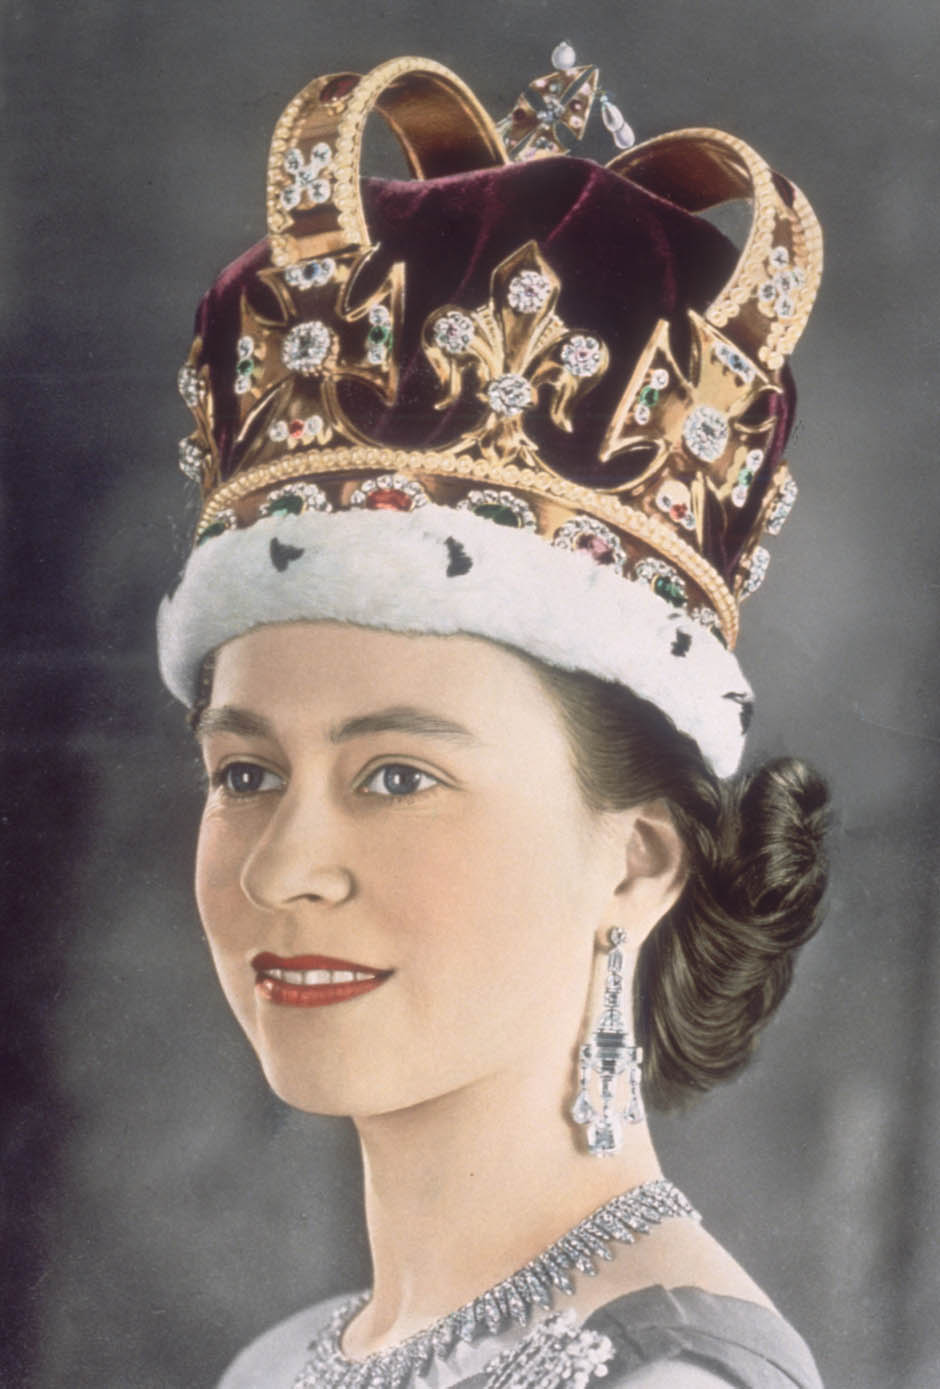 Queen Elizabeth II queen elizabeth ii jewelleryQueen Elizabeth Crown